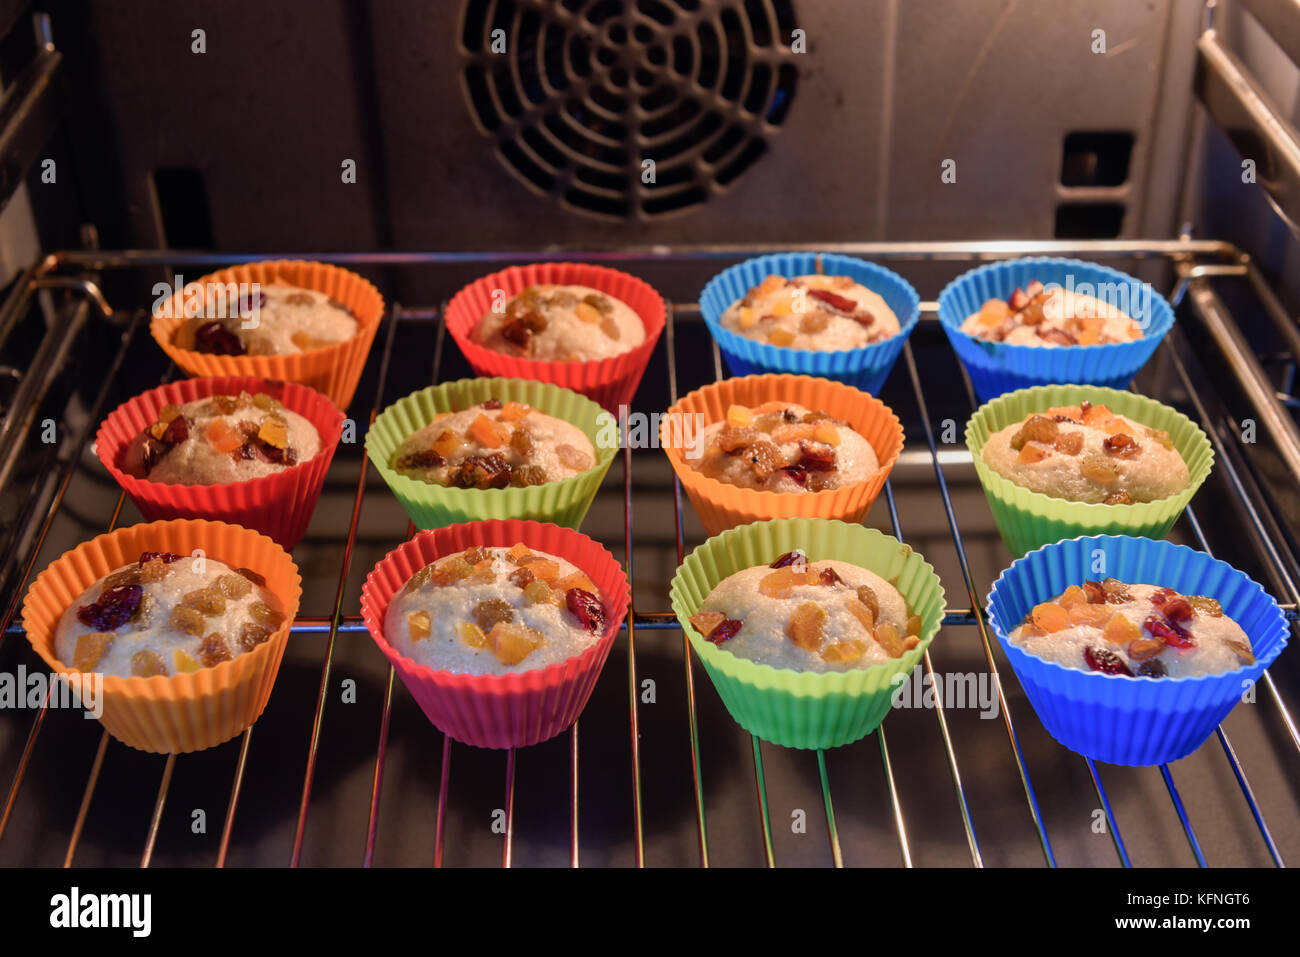 Homemade colorful cupcakes in baker - Stock Image